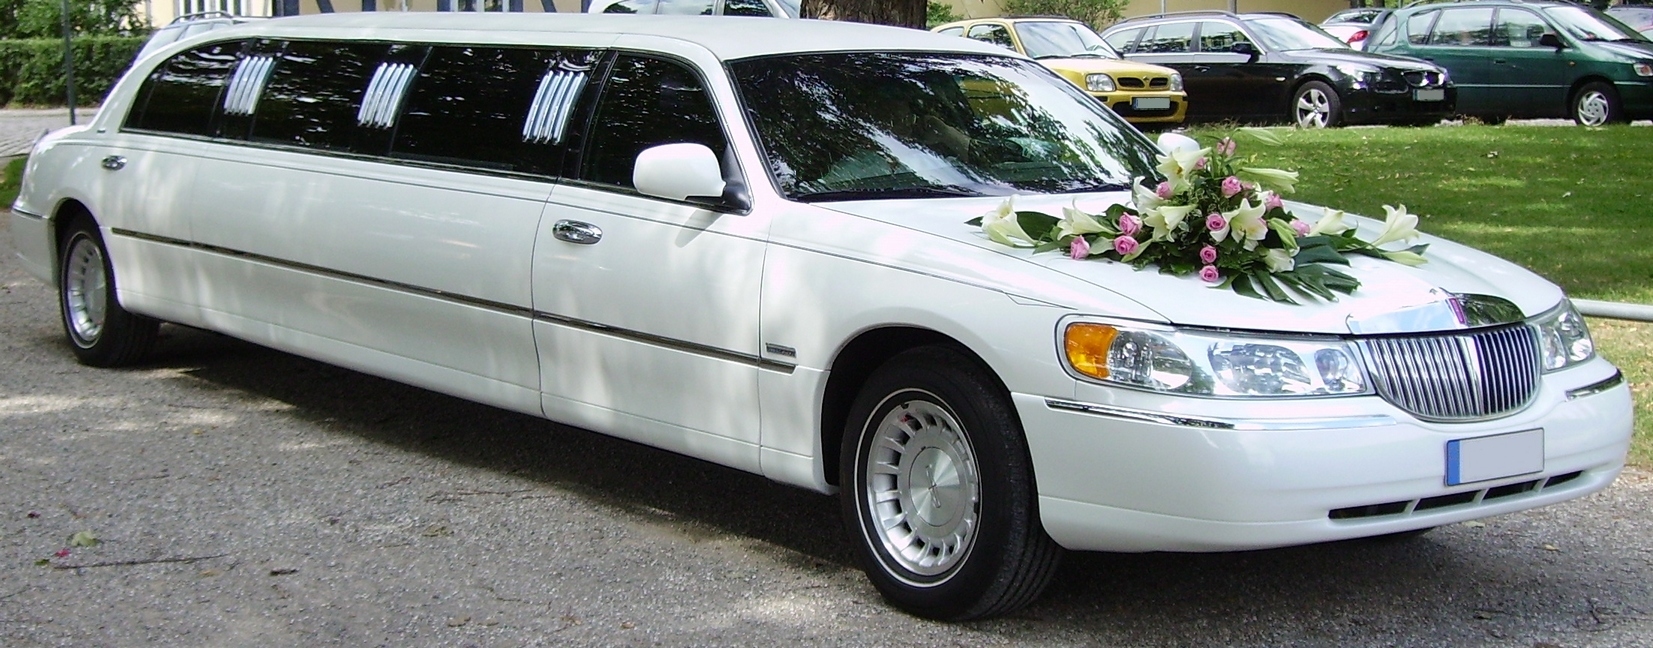 Why You Should Hire a Limo Service for Your Wedding Guests